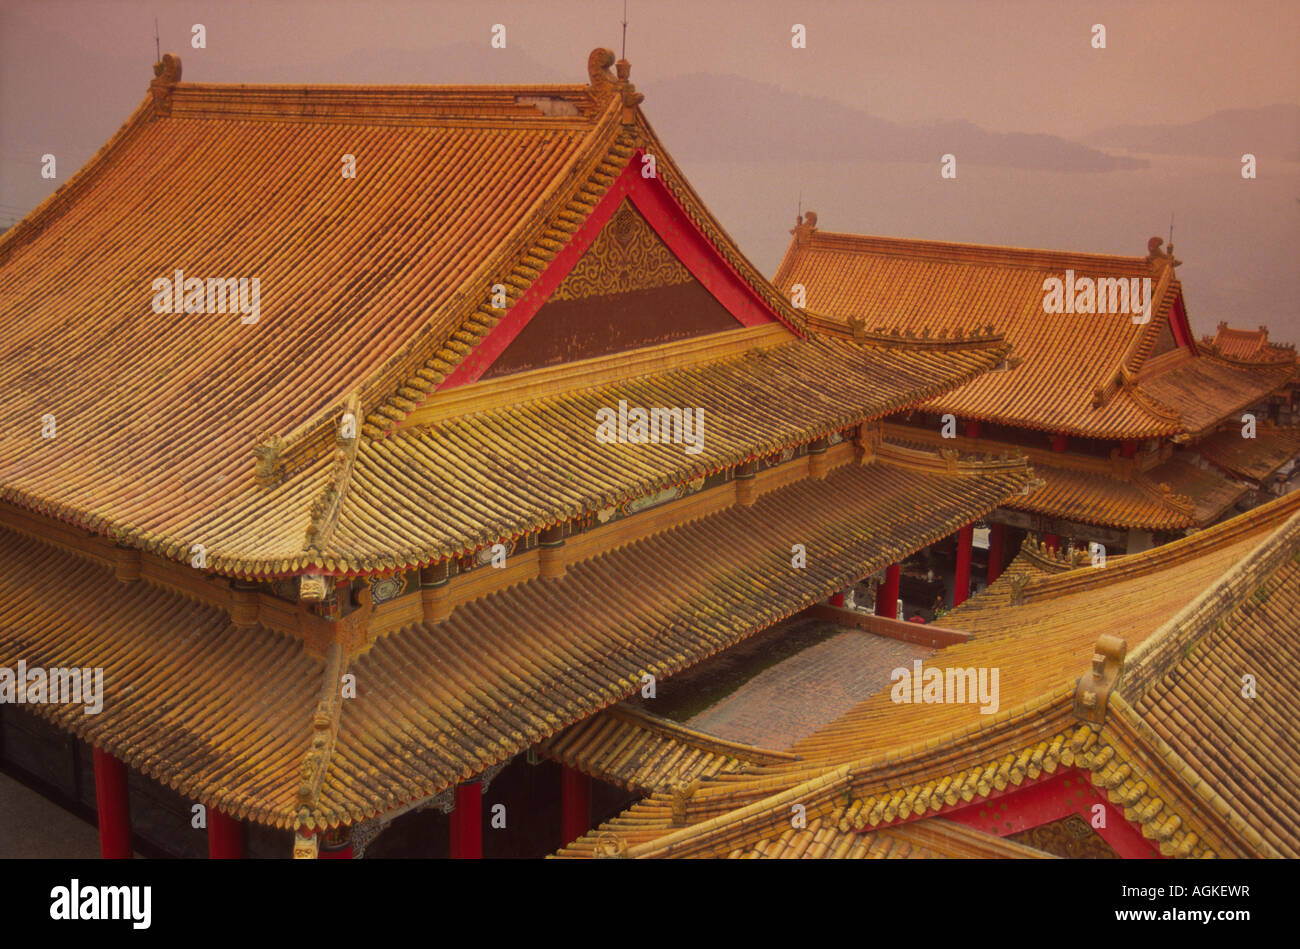 Taiwan, Wenwu Temple rooftops with Sun Moon Lake in background. - Stock Image